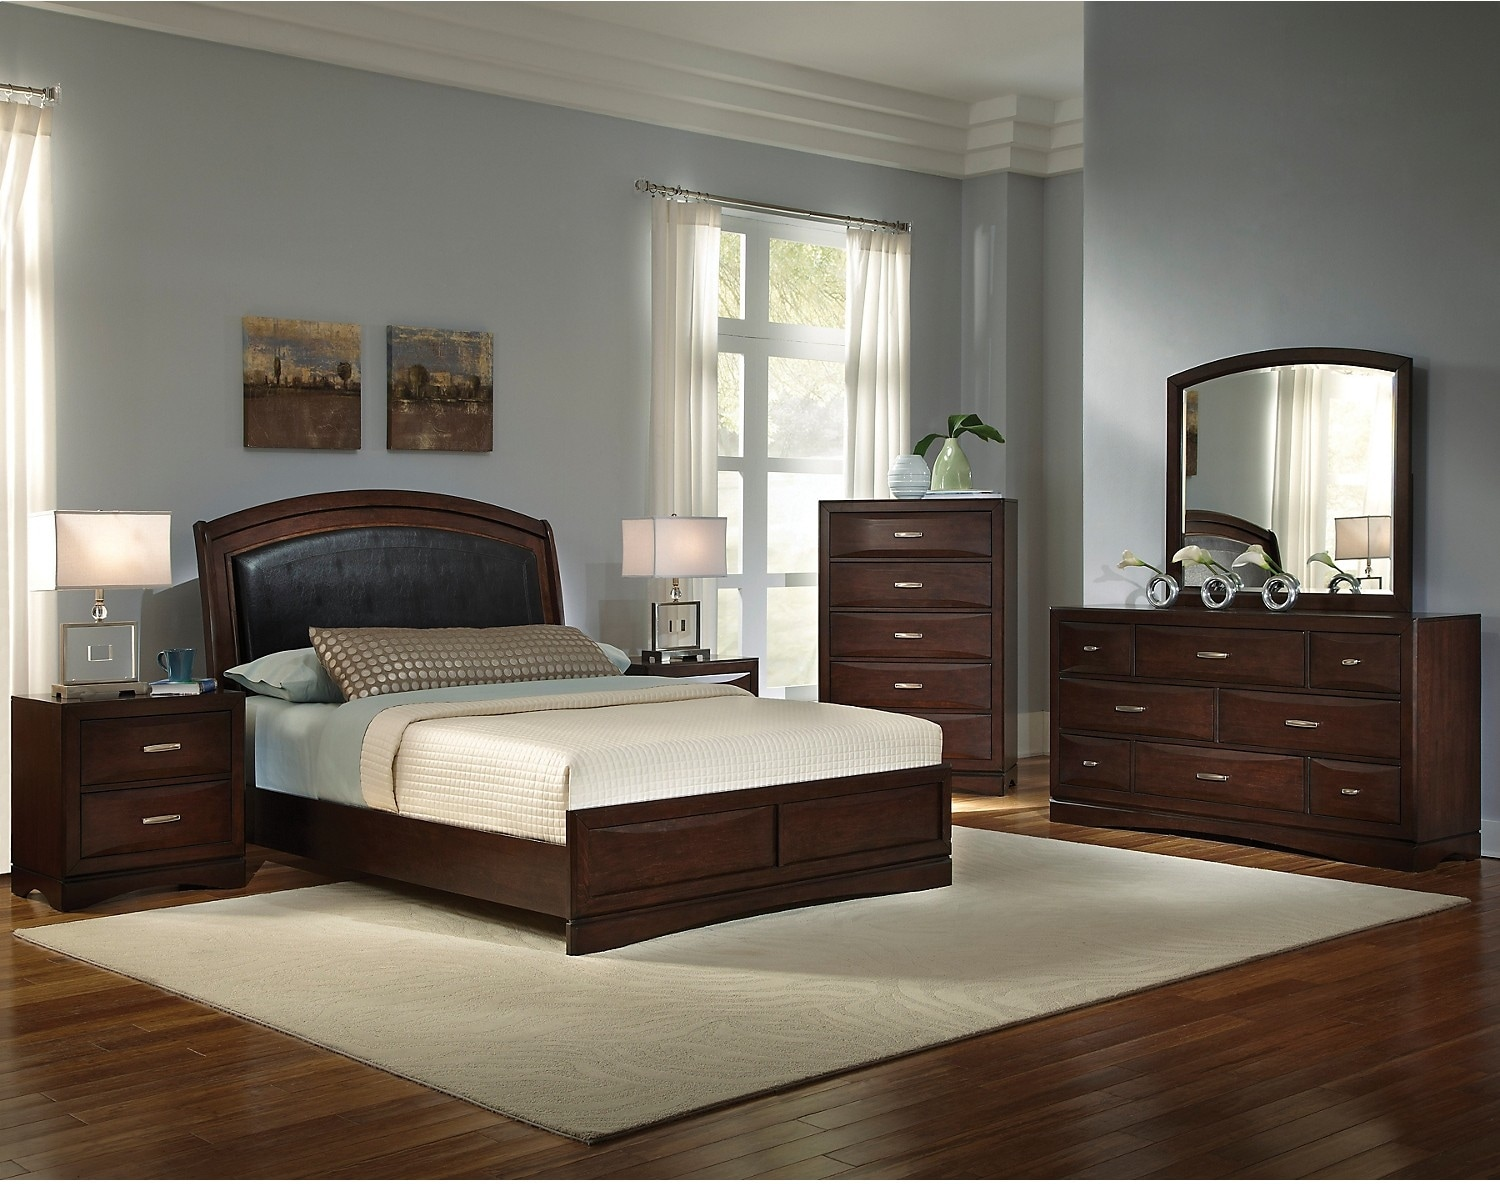 Beverly 8-Piece King Bedroom Set